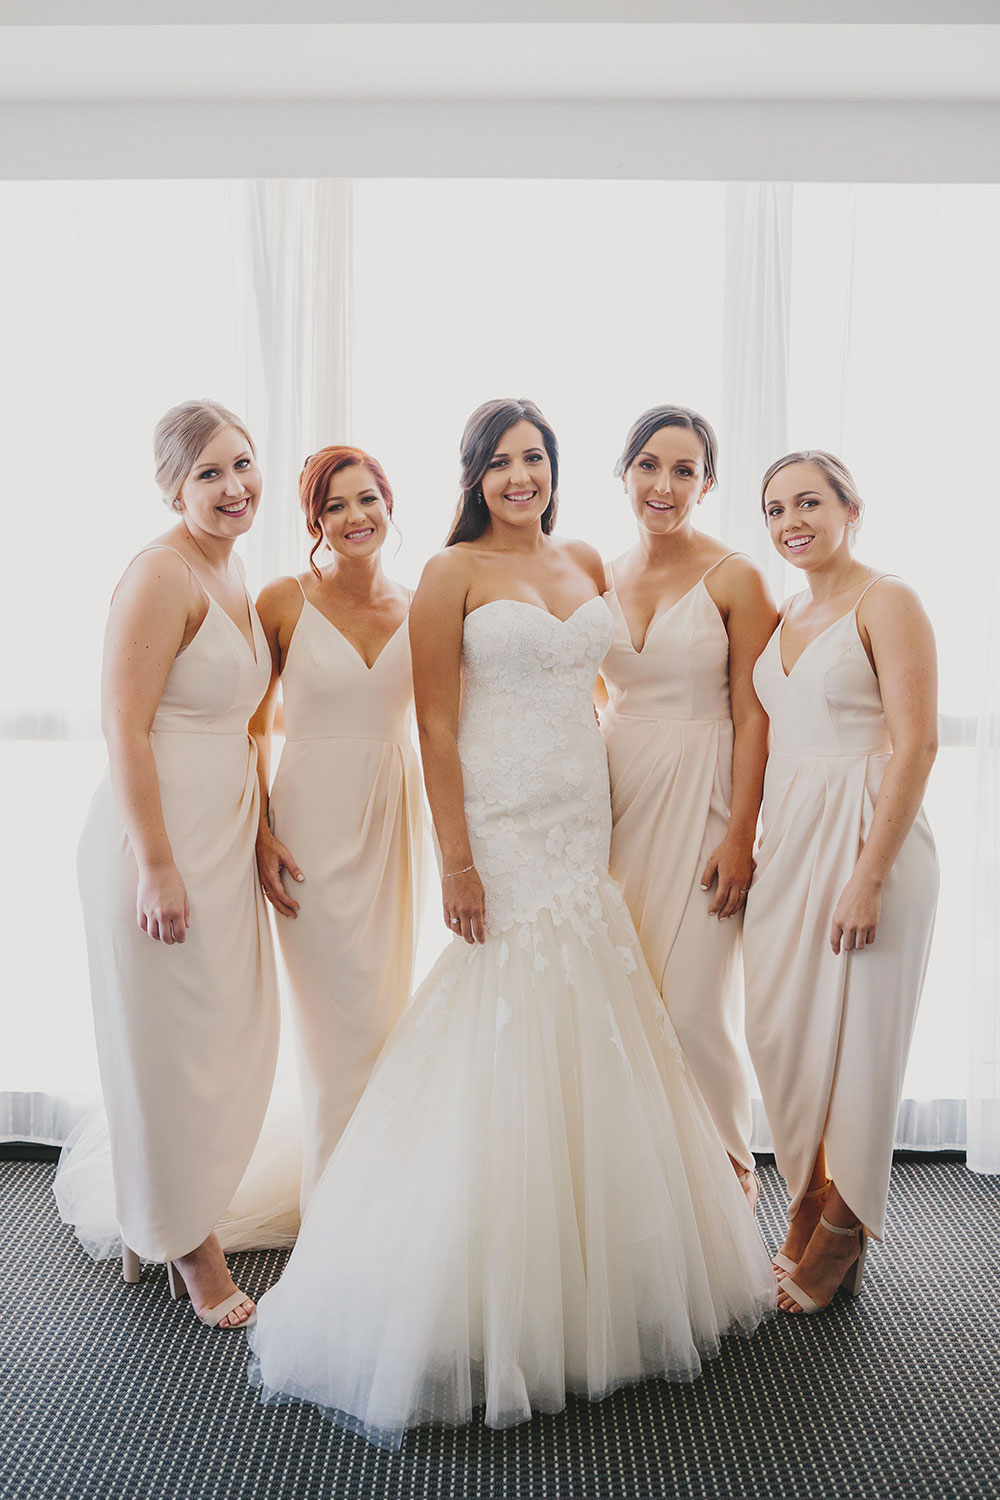 India and her bridesmaids